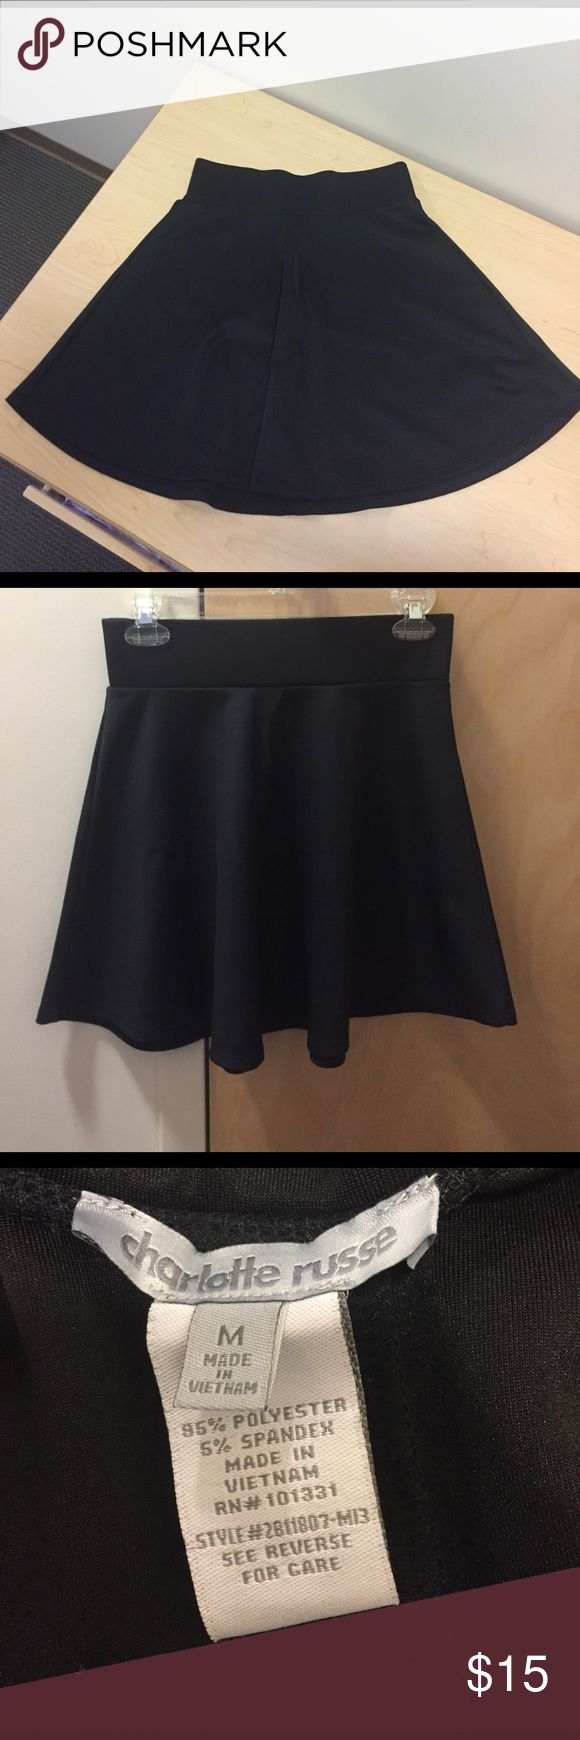 Never worn! Black skater skirt Black skater skirt with thick stretchy bad, perfect for a date or night out Charlotte Russe Skirts Circle & Skater